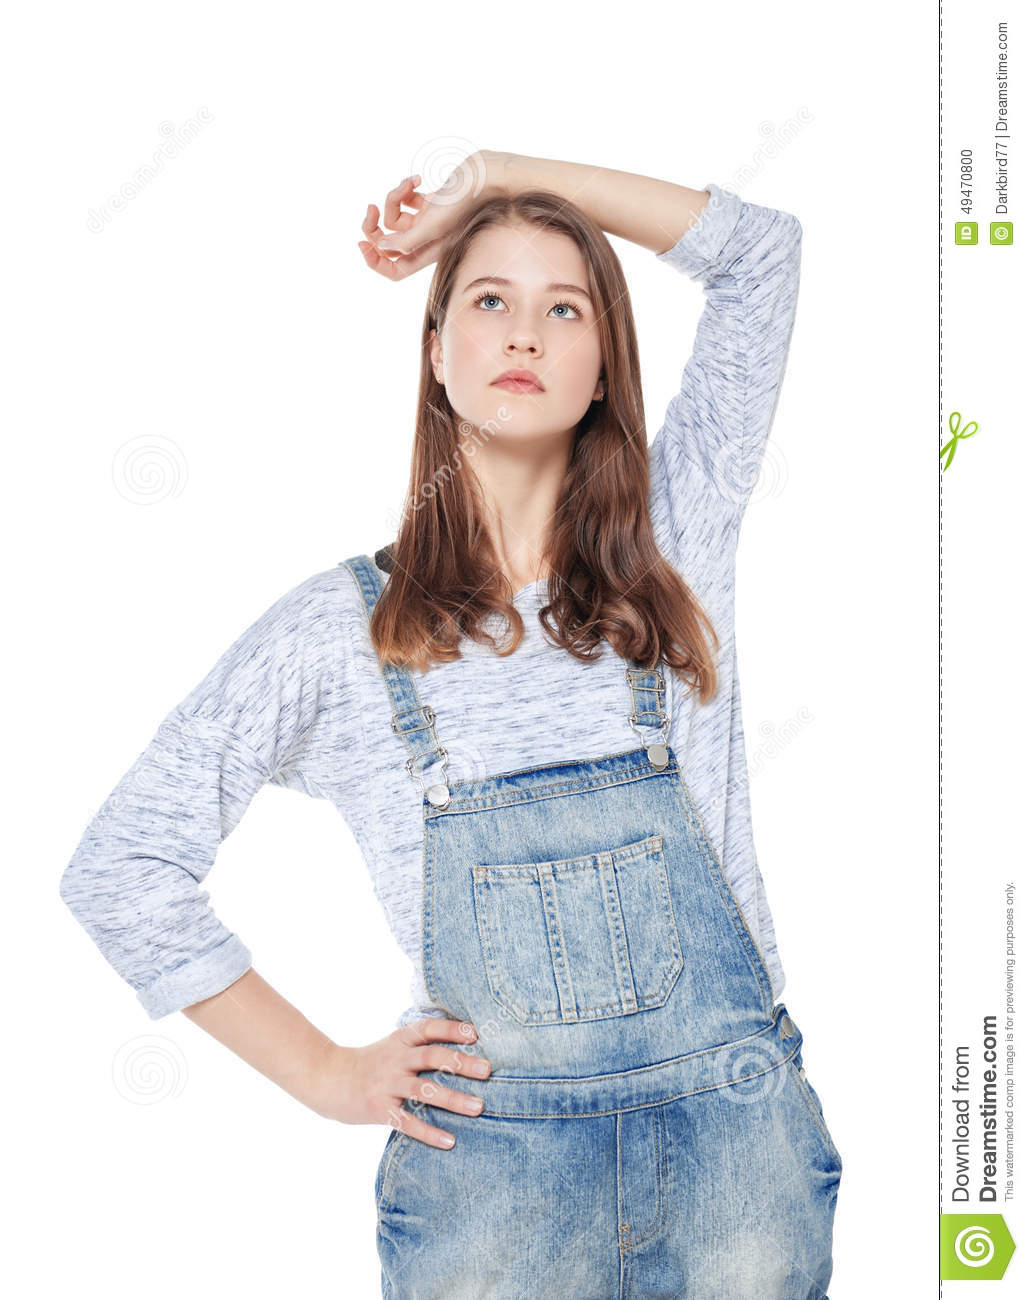 Young Fashion Girl In Jeans Overalls Posing Isolated Stock Photo Image 49470800